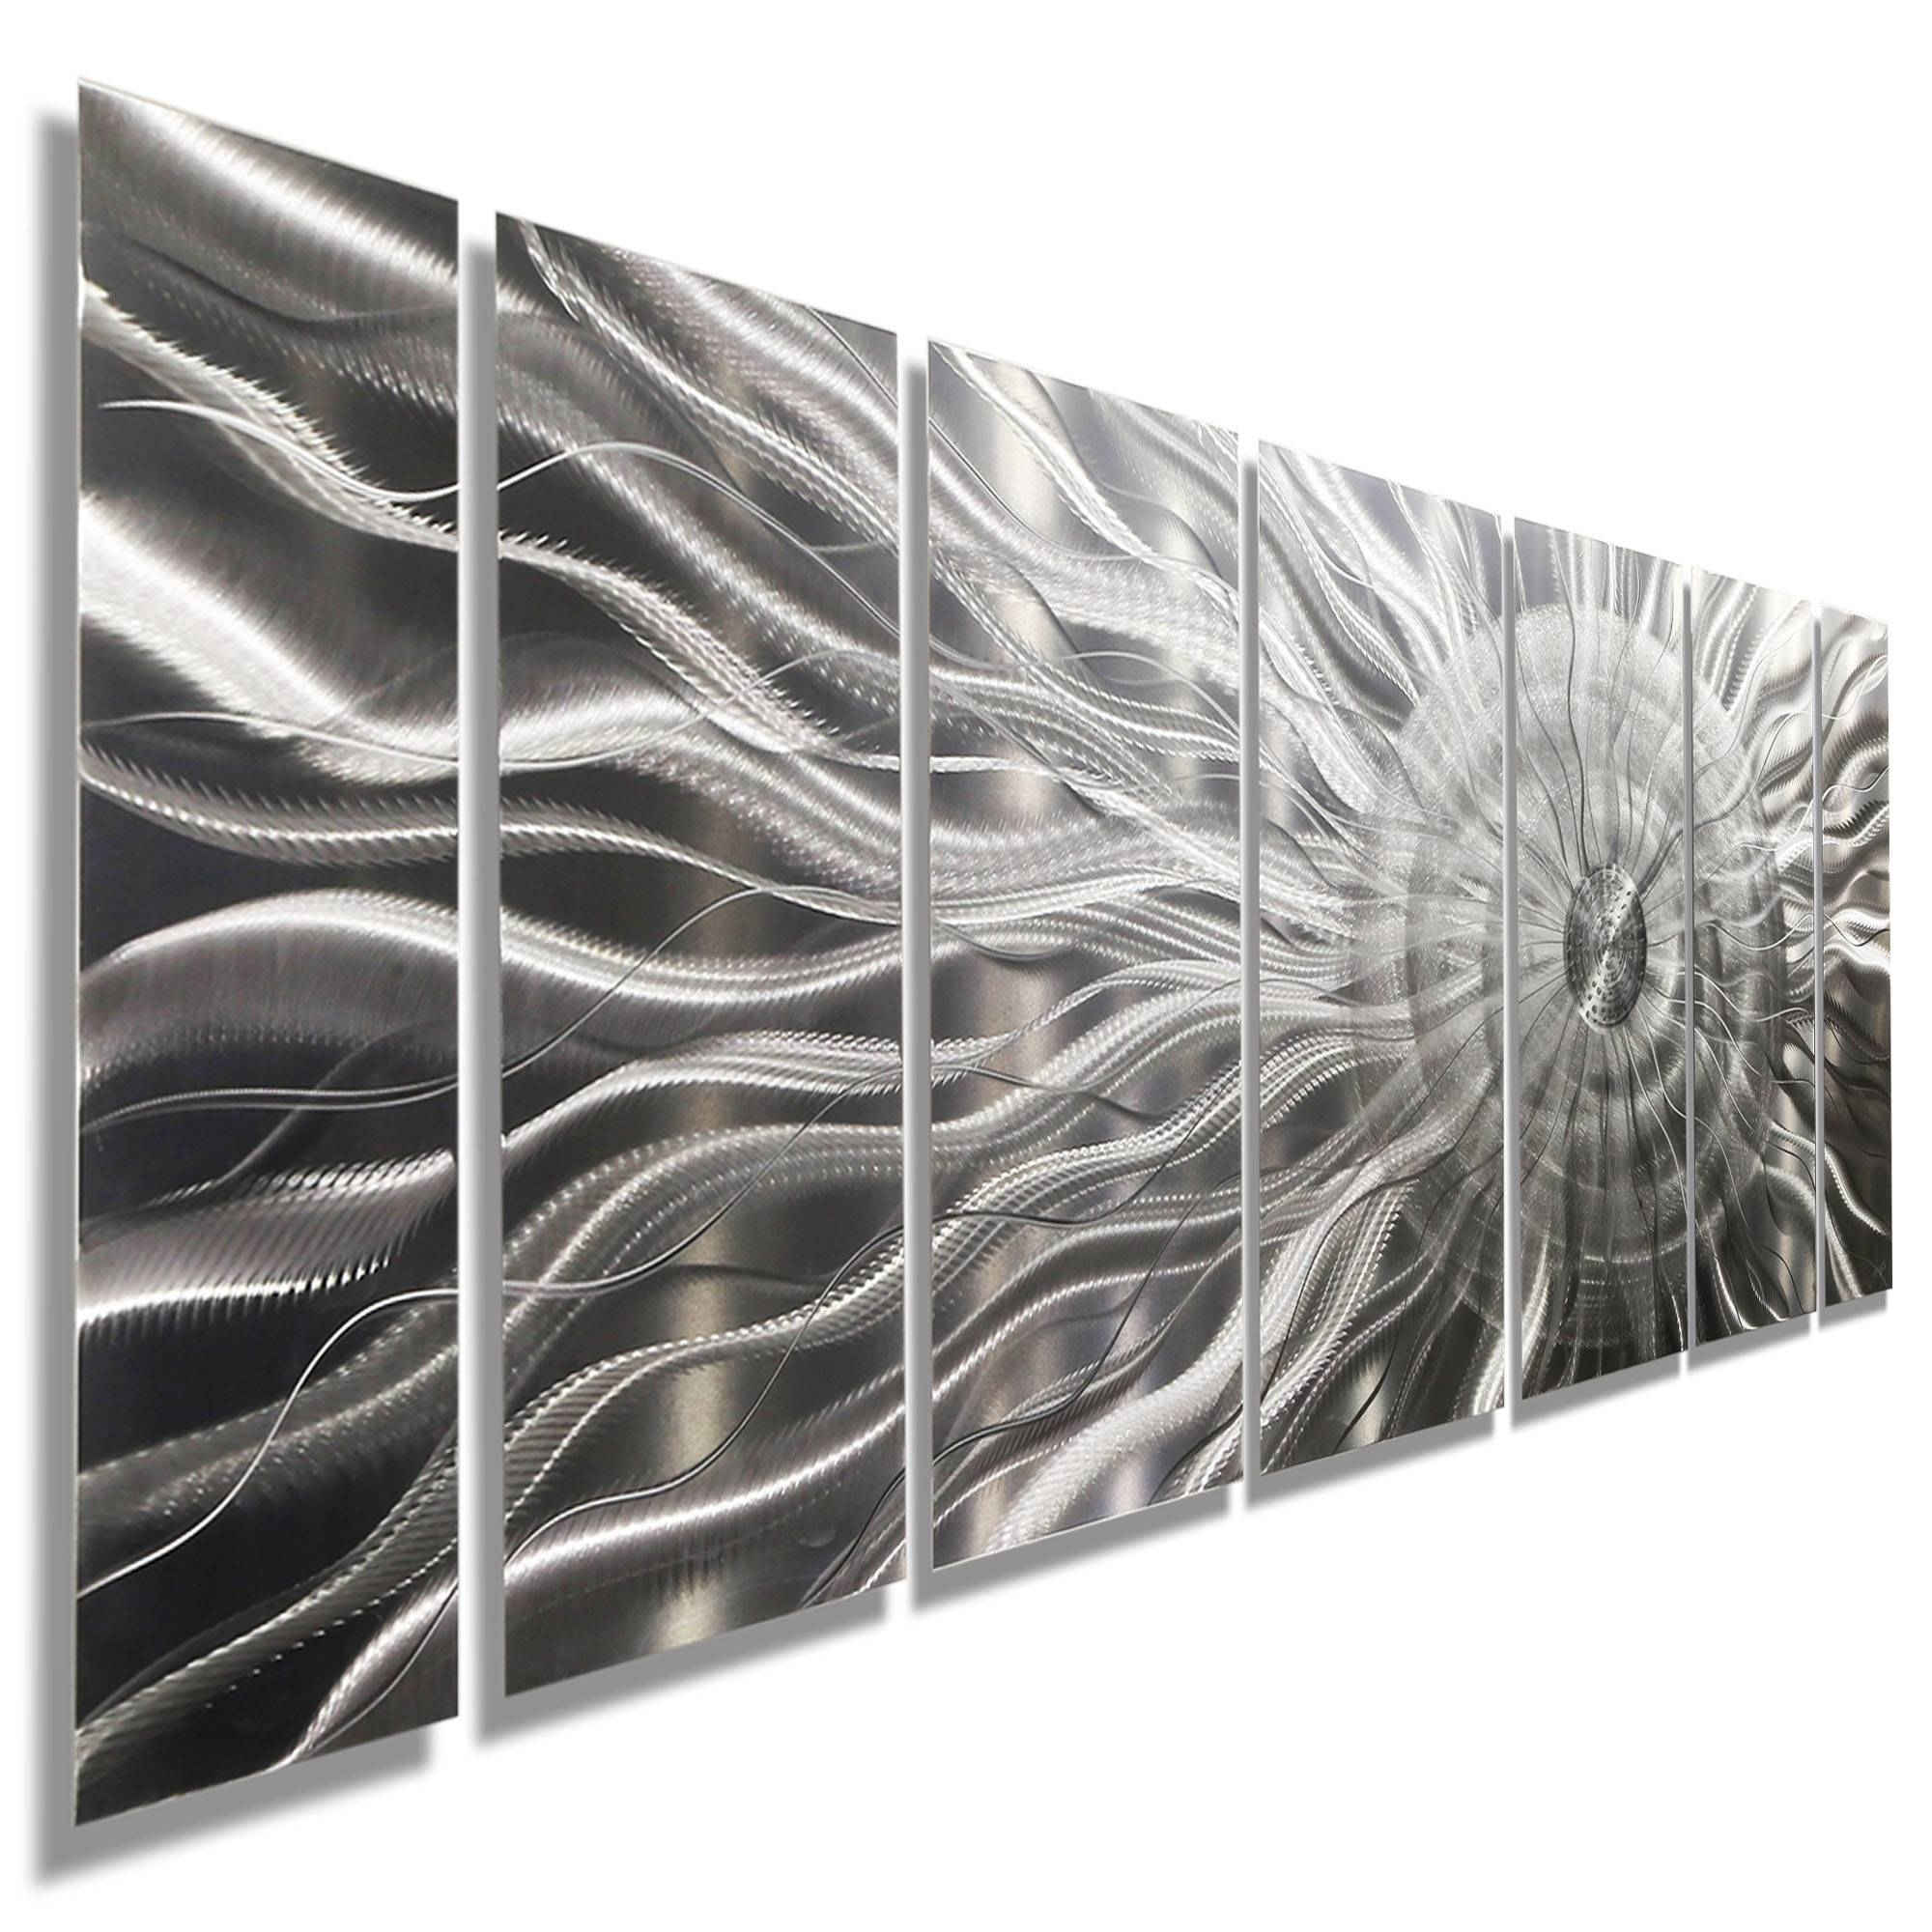 Photon Xl – Extra Large Modern Abstract Silver Corporate Metal Intended For Most Recently Released Large Metal Wall Art Sculptures (View 20 of 20)